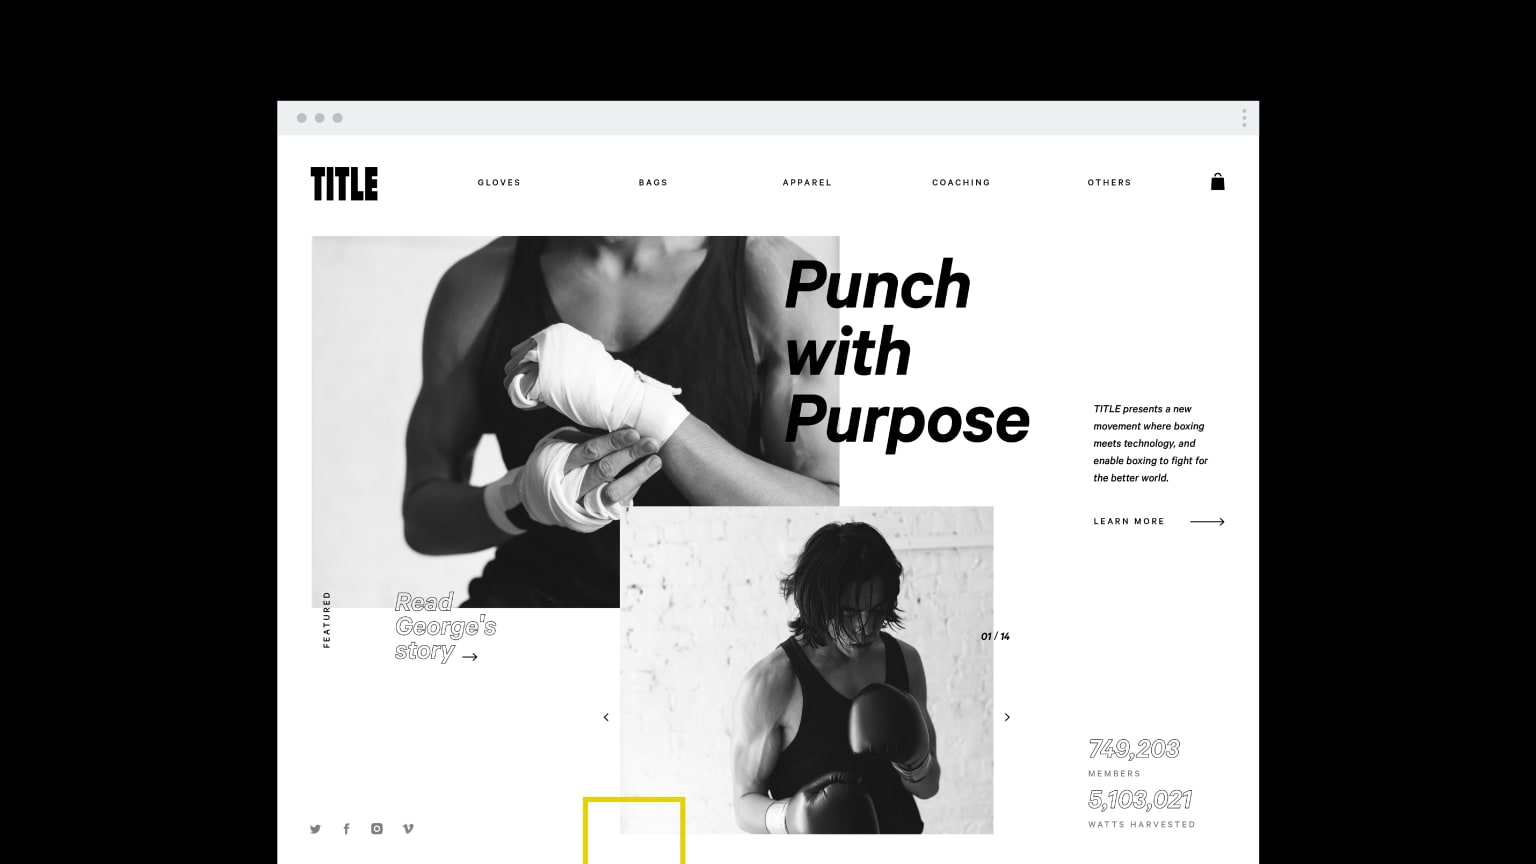 Punch with Purpose